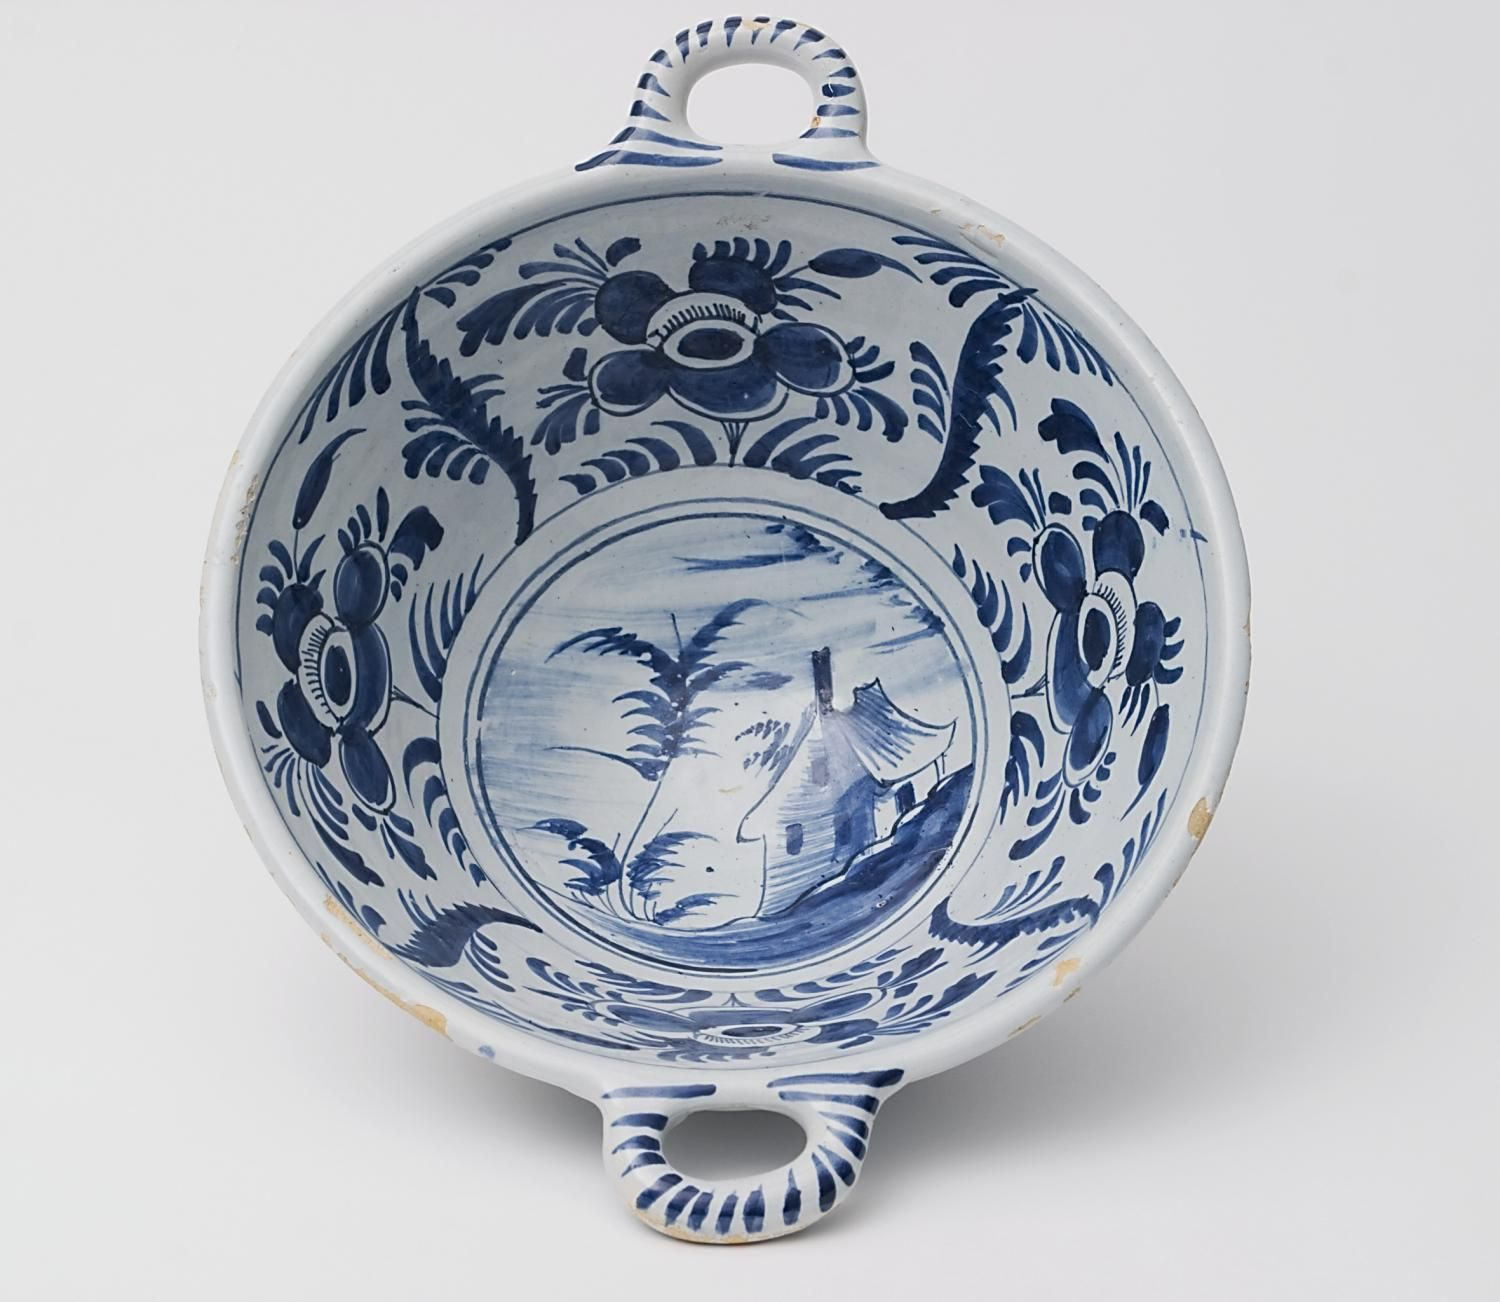 A Dutch Delft Blue and White Porringer. 1740-1750, Delft,The Netherlands.